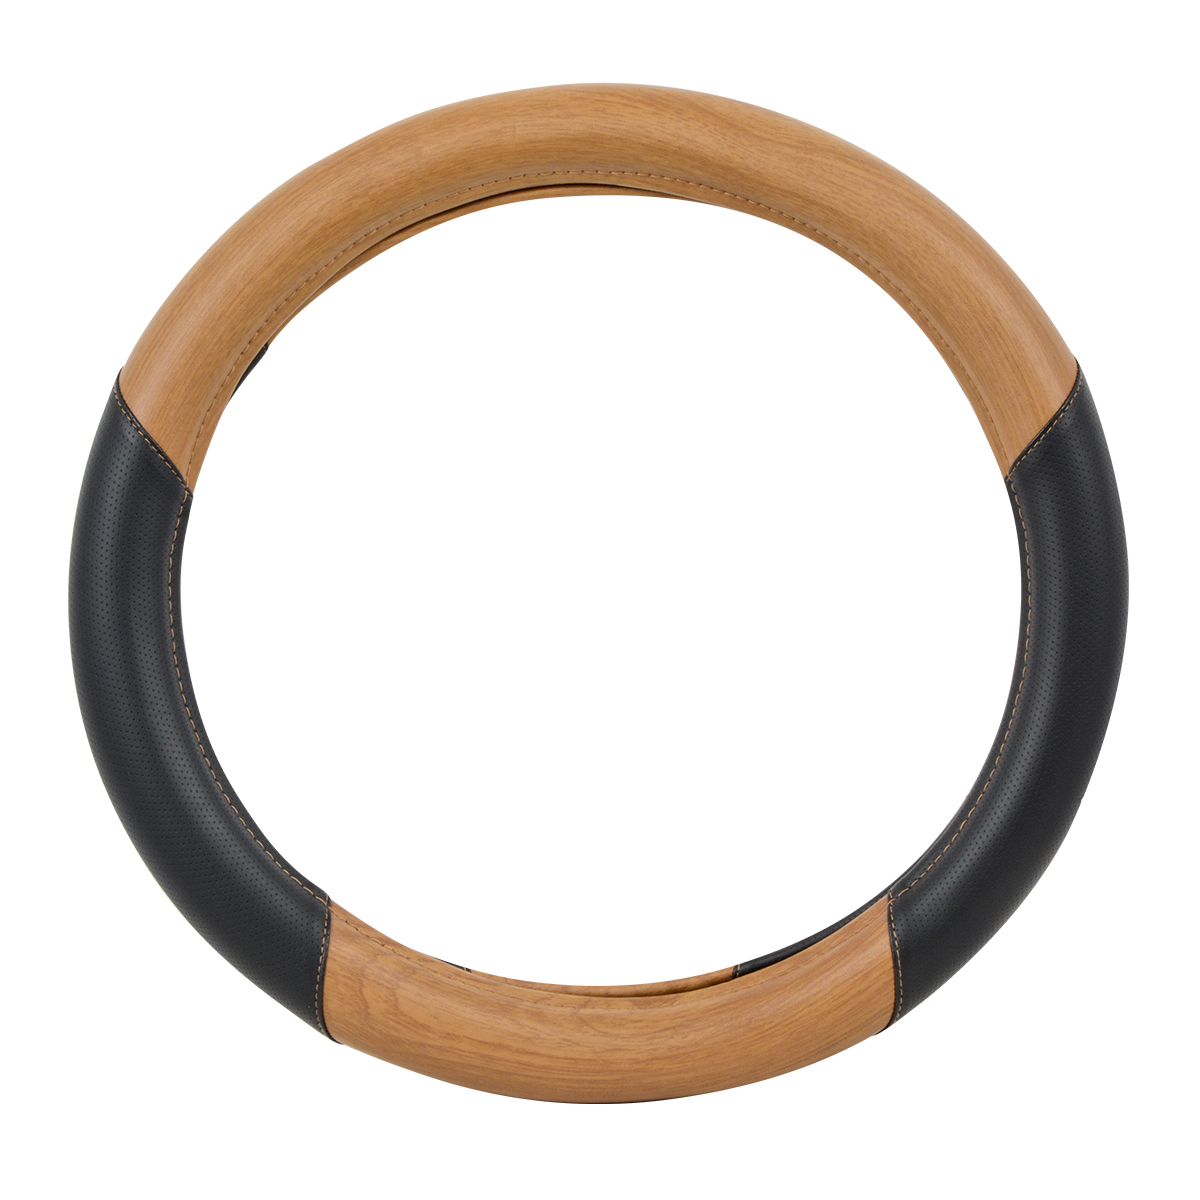 "54061 Heavy Duty 18"" Steering Wheel Cover in Deluxe Matte Natural Wood"